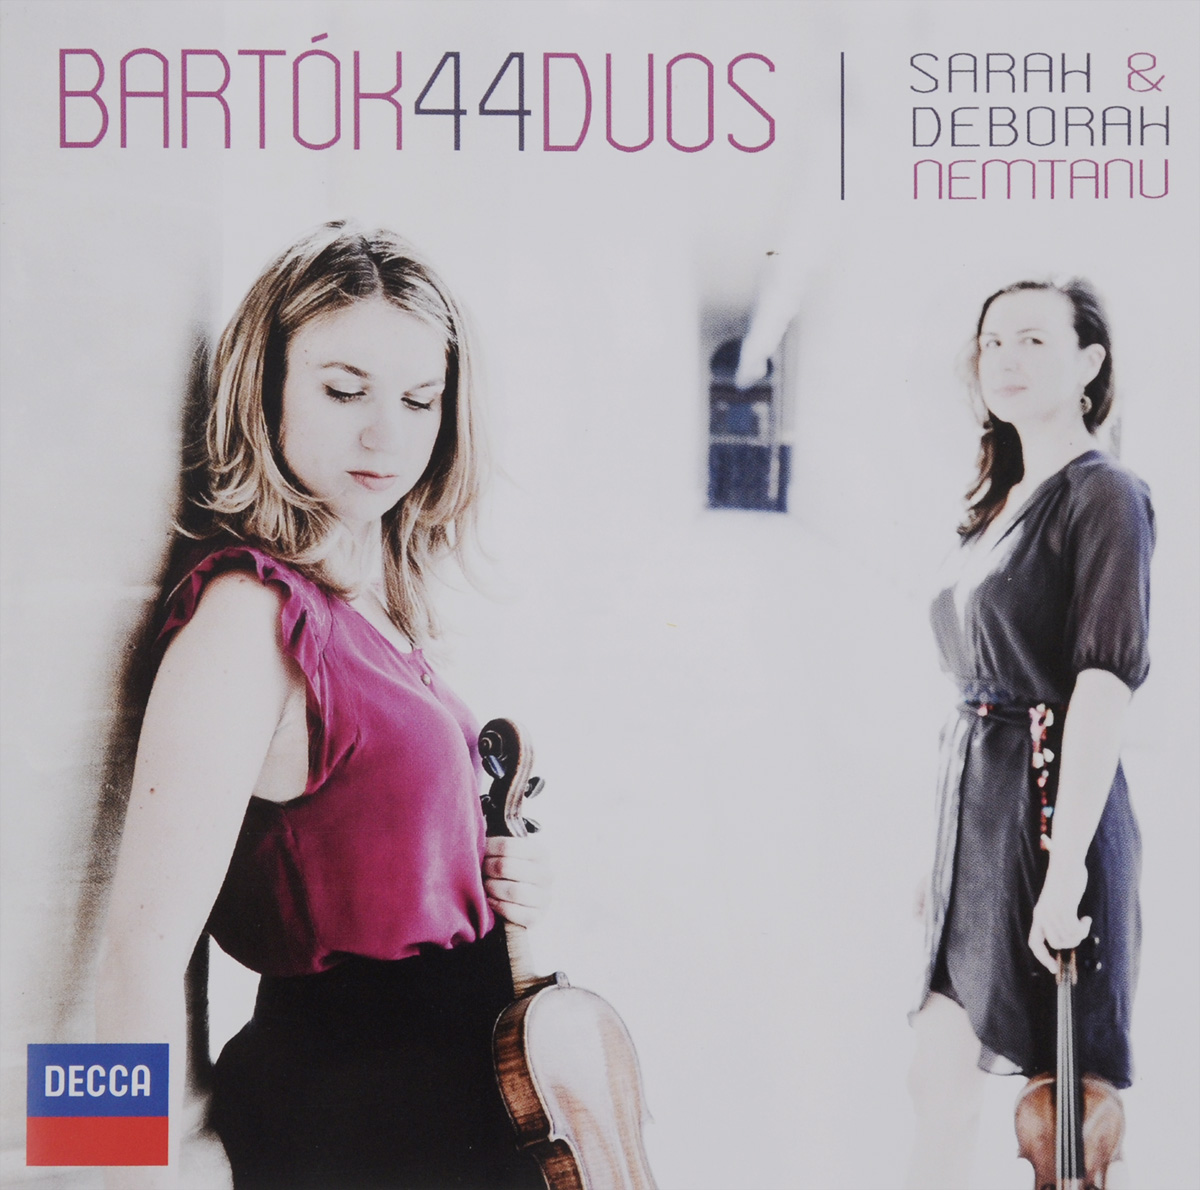 Sarah Nemtanu,Deborah Nemtanu Sarah Nemtanu. Deborah Nemtanu. Bartok. 44 Duos For Two Violins deborah trendel leader iv therapy for dummies isbn 9781118224458